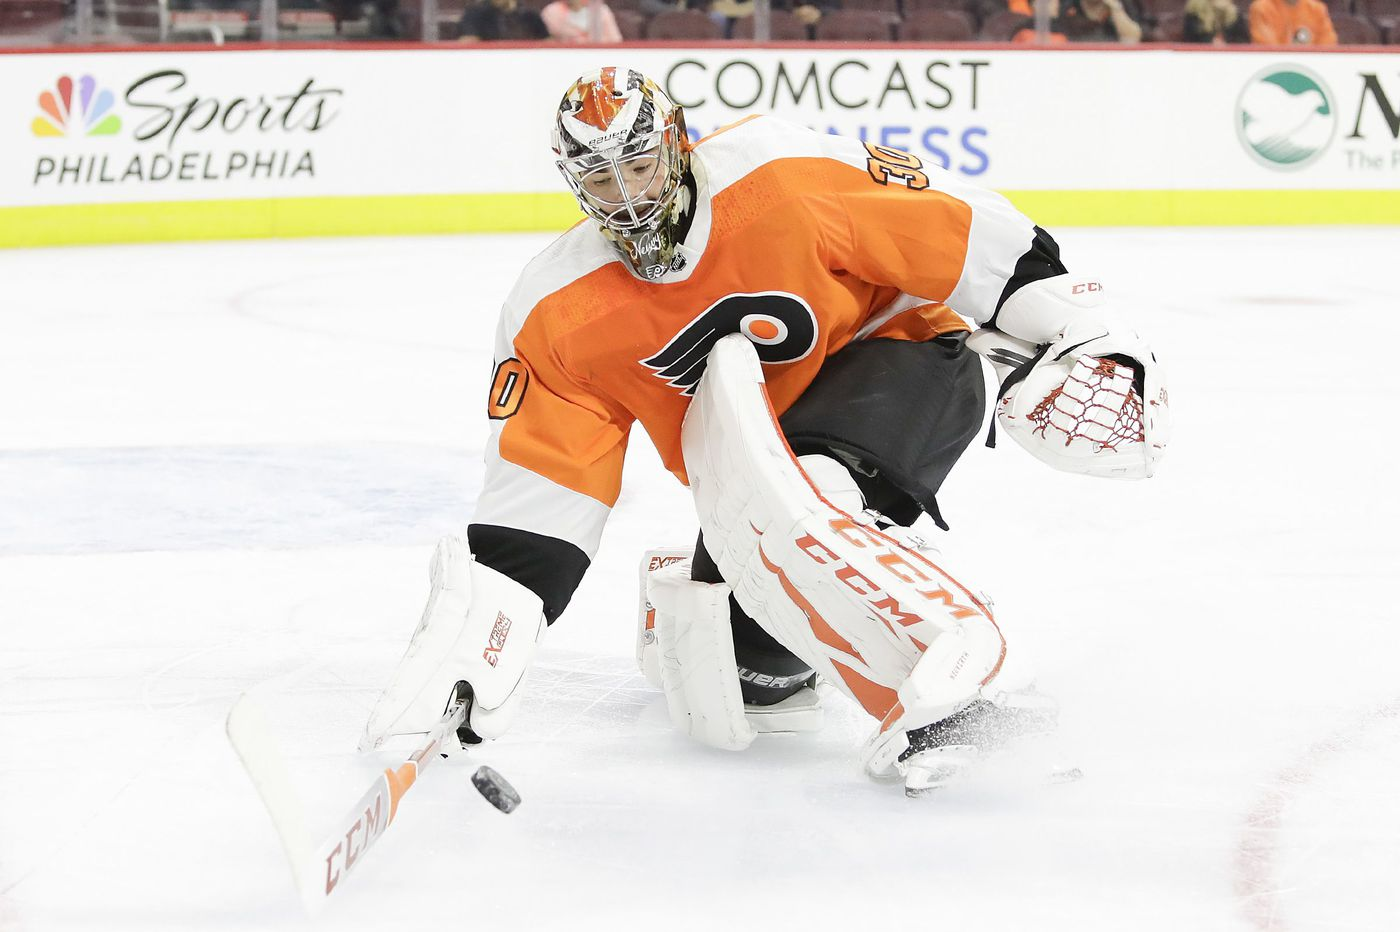 Michal Neuvirth wins rehab start with Phantoms, 7-3; may play Sat. for Flyers